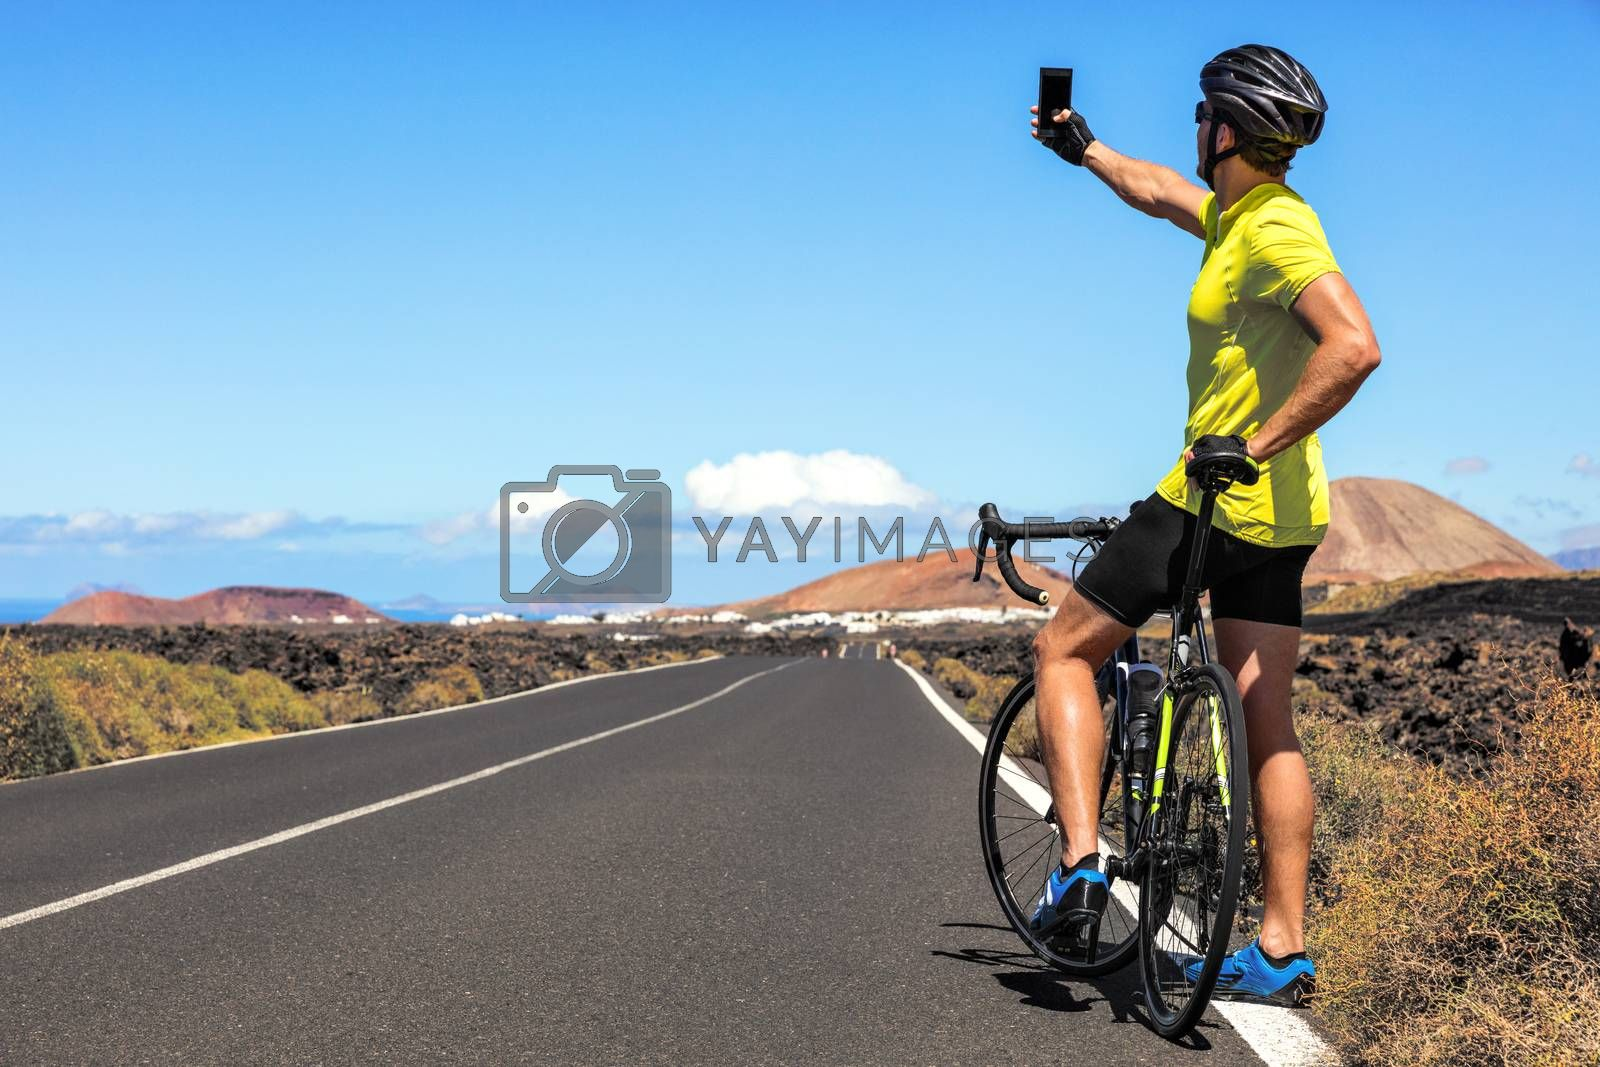 Cyclist tourist taking selfie picture with smartphone during biking trip alone on summer vacation travel. Man riding road bike using phone to take photos during holidays.